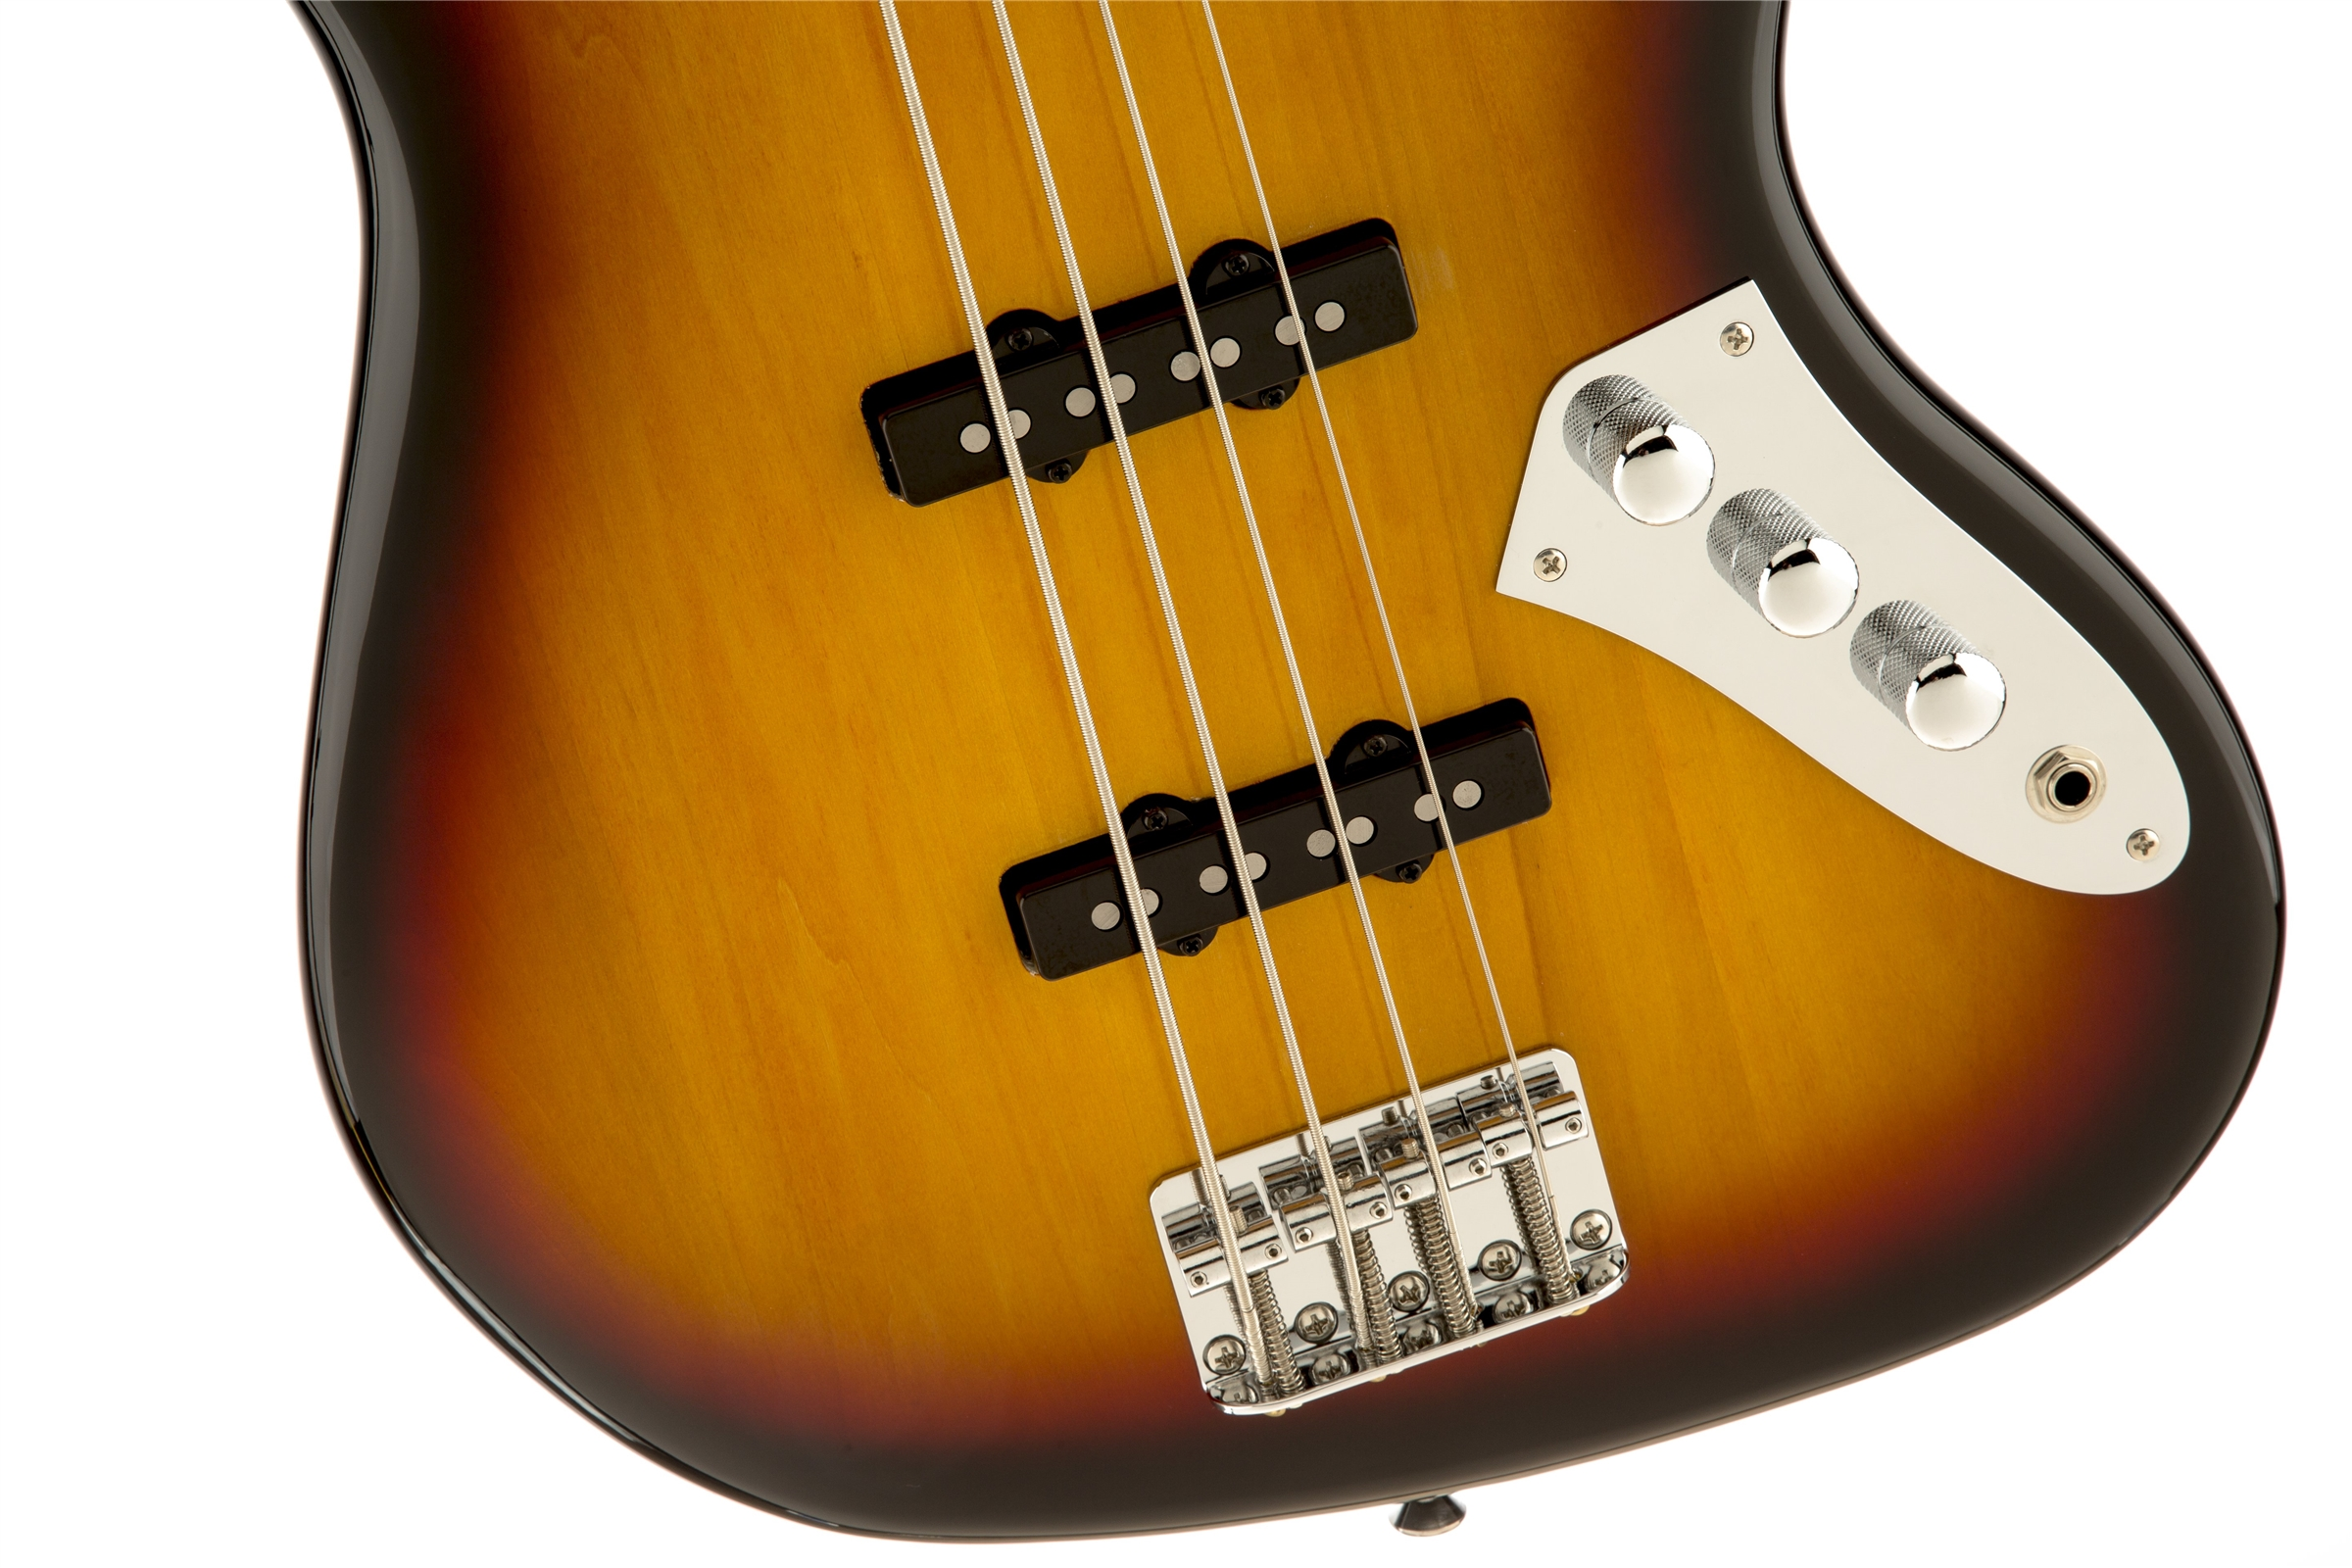 My eb bass squier vintage modified jazz bass - Vintage Modified Jazz Bass Fretless